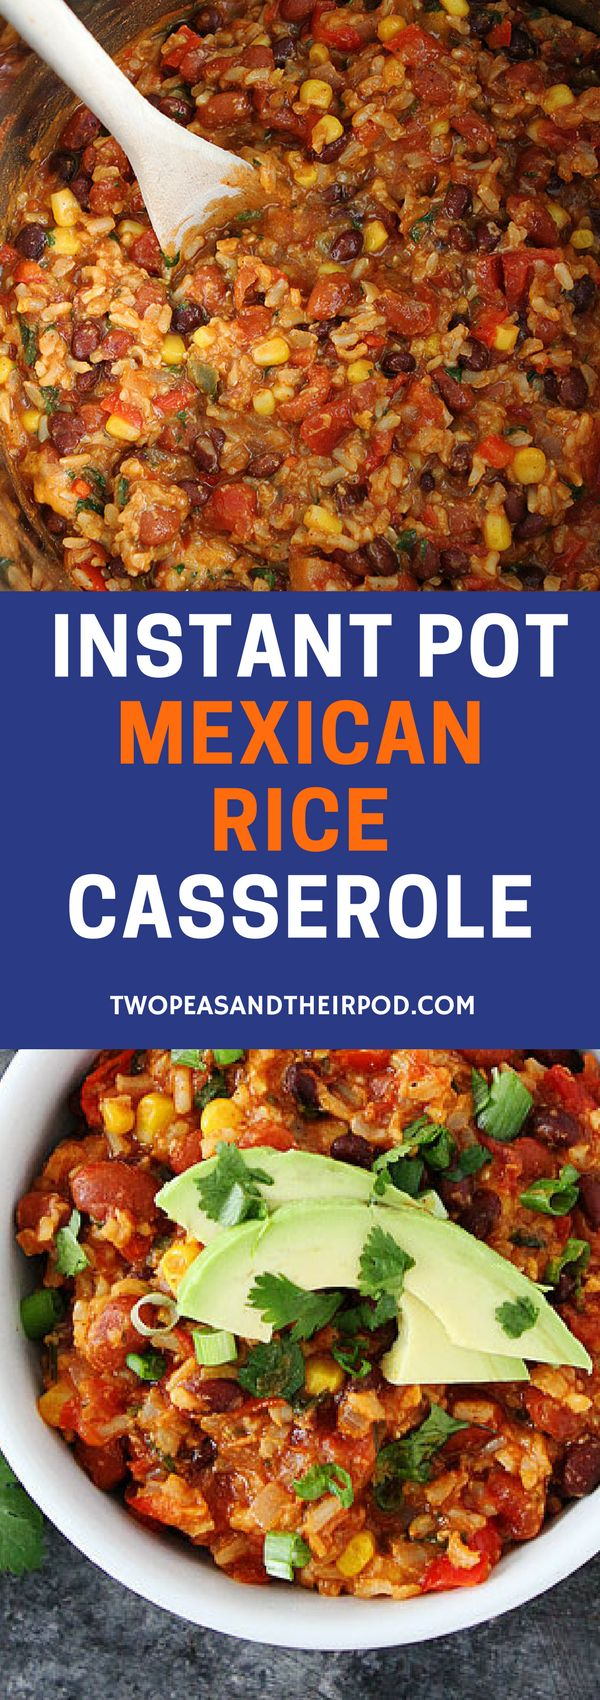 Instant Pot Mexican Rice Casserole is a weeknight dinner favorite! You will love this cheesy black bean and rice casserole! It is easy to make and freezes well too! #dinner #easyrecipes #vegetarian #glutenfree #InstantPot #casserole